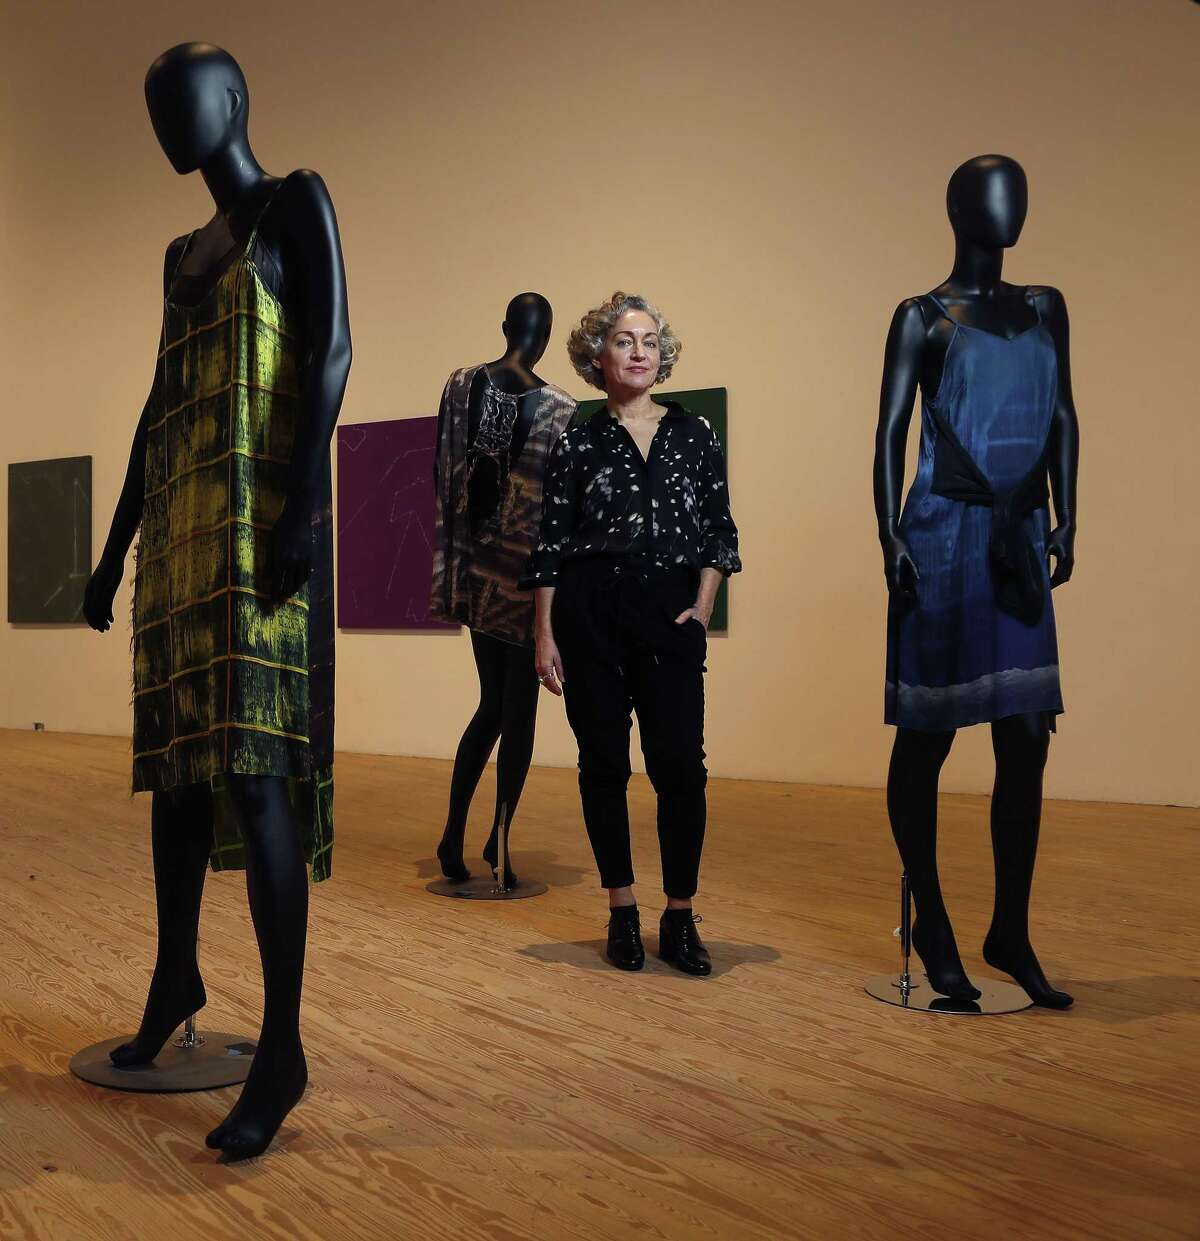 """Artist Cheryl Donegan within her solo show """"GRLZ + VEILS"""" at the Contemporary Arts Museum Houston, Friday, Jan. 18, 2019, in Houston. The show features a highly curated selection of Donegan's work including paintings, videos, unstretched hanging printed fabrics, and a new collection of clothing."""